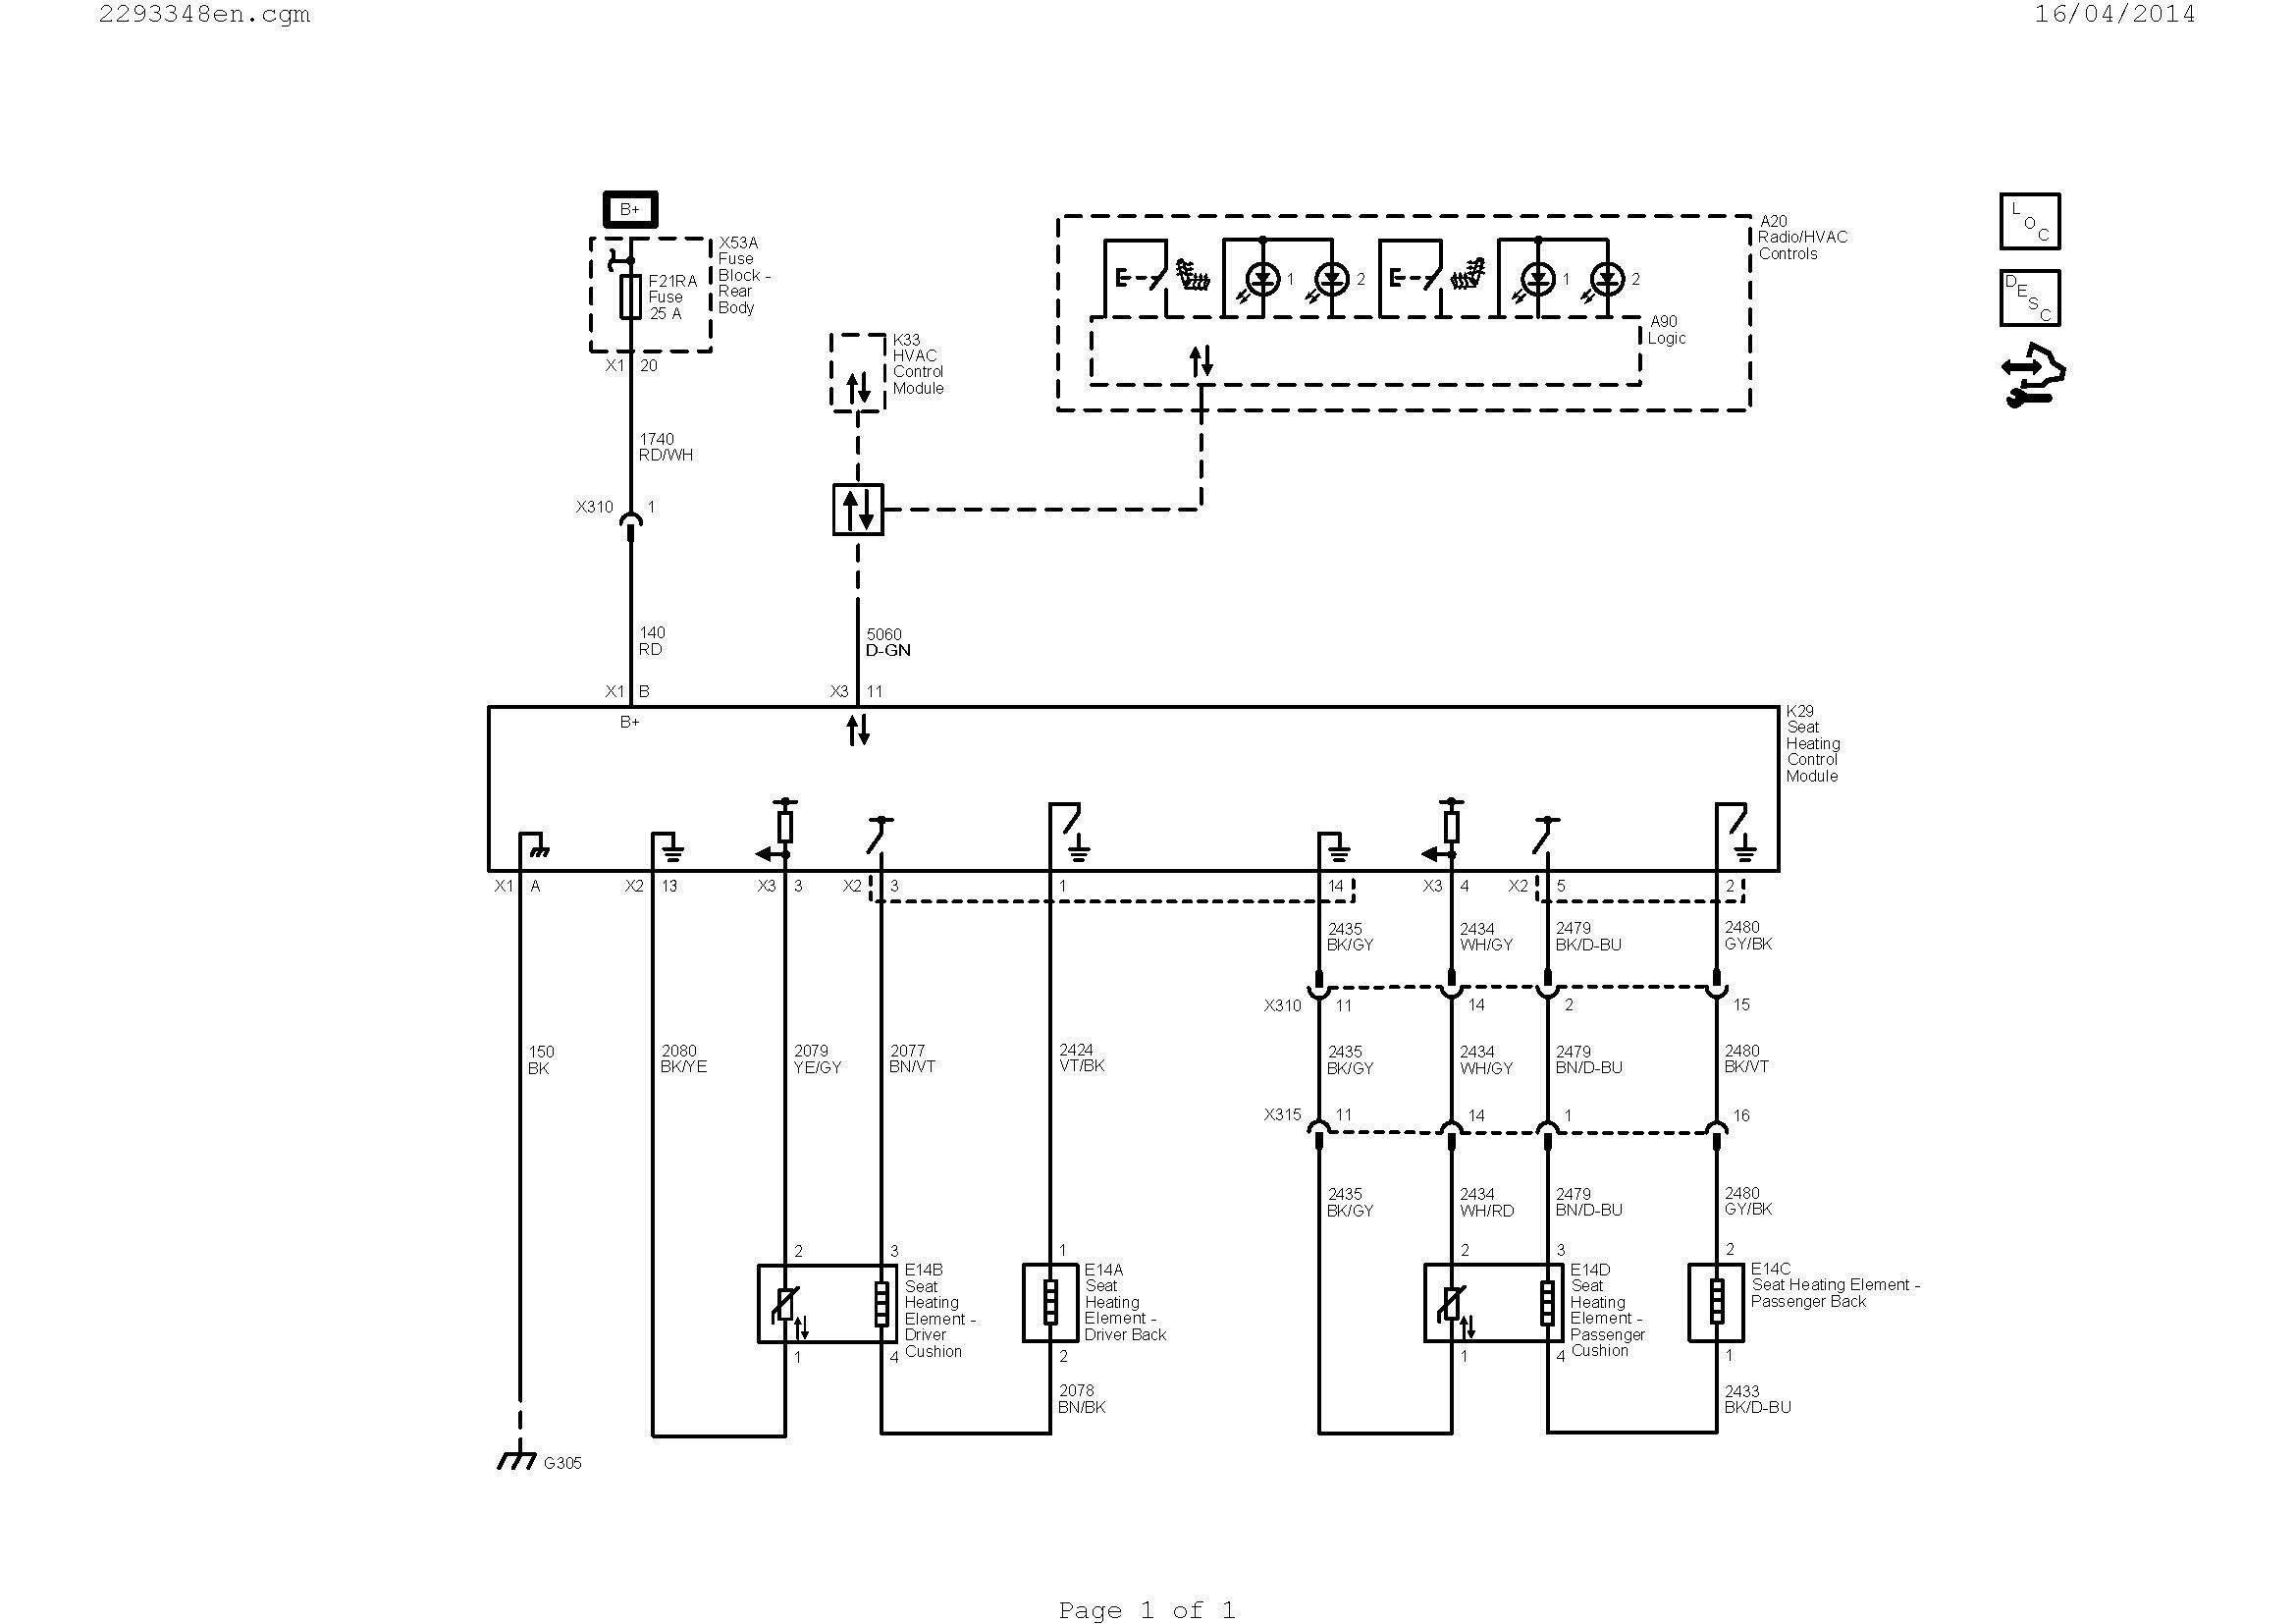 reliance csr302 wiring diagram Collection-Guitar Cable Wiring Diagram Valid Wiring Diagram Guitar Fresh Hvac Control Relay Wiring Diagram Collection 11-h